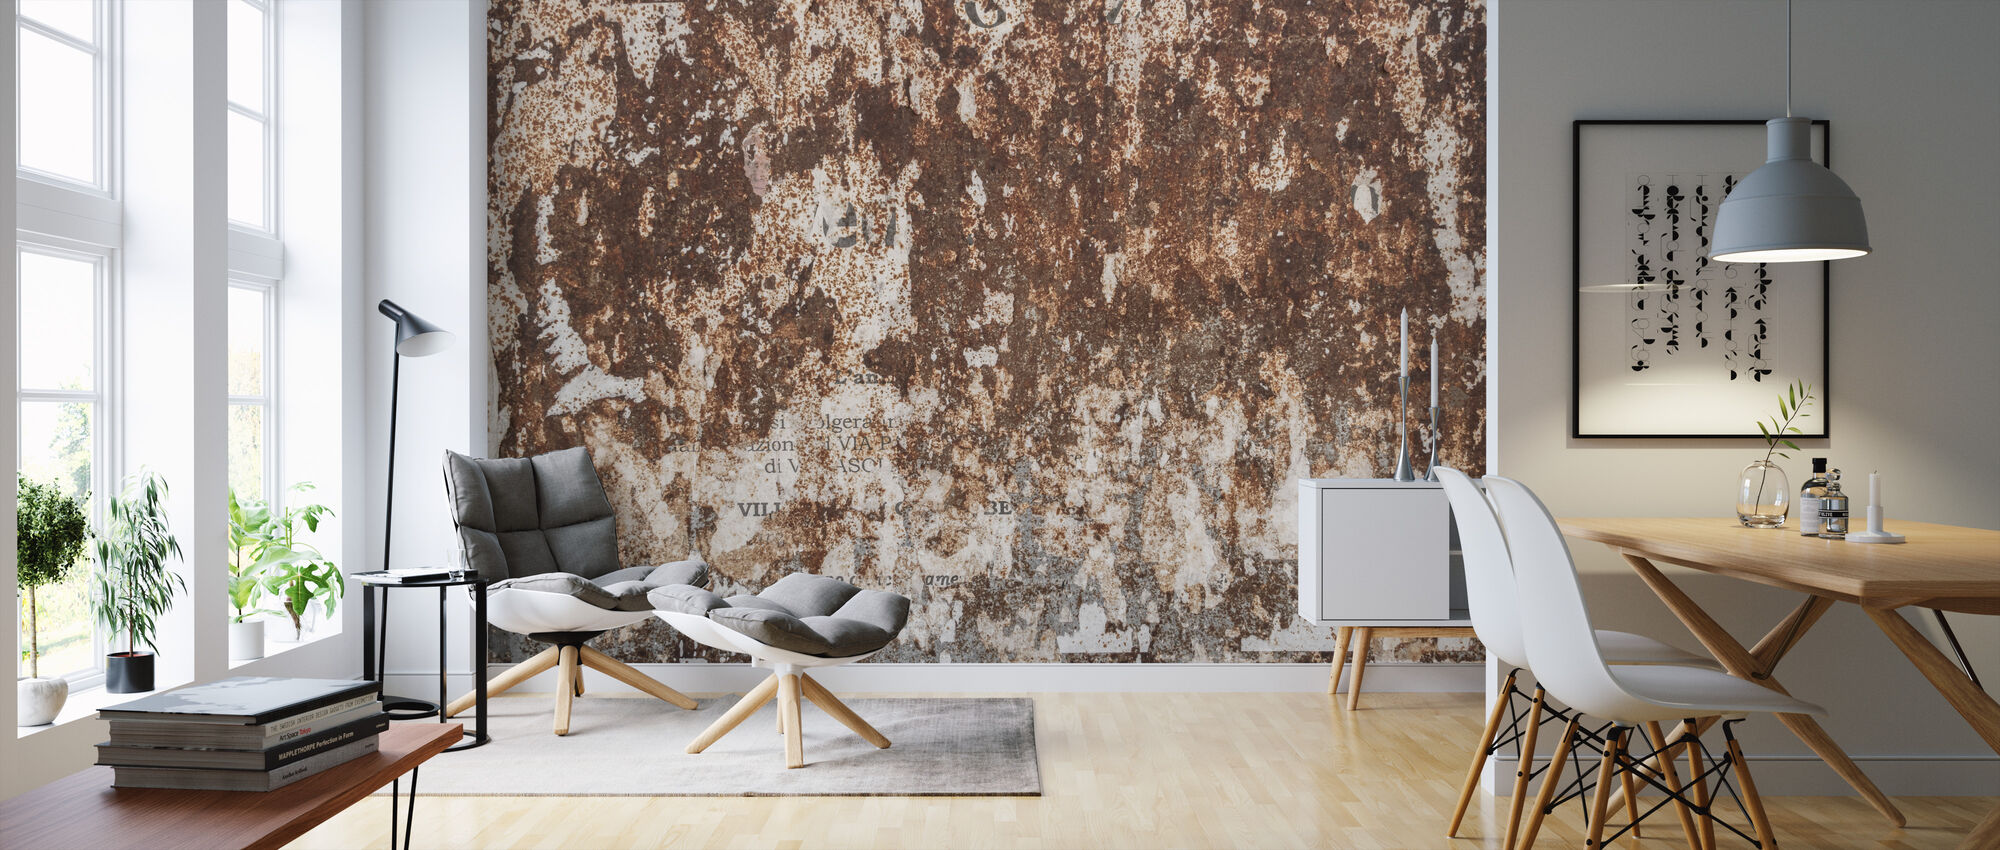 Rusty Wall - Wallpaper - Living Room